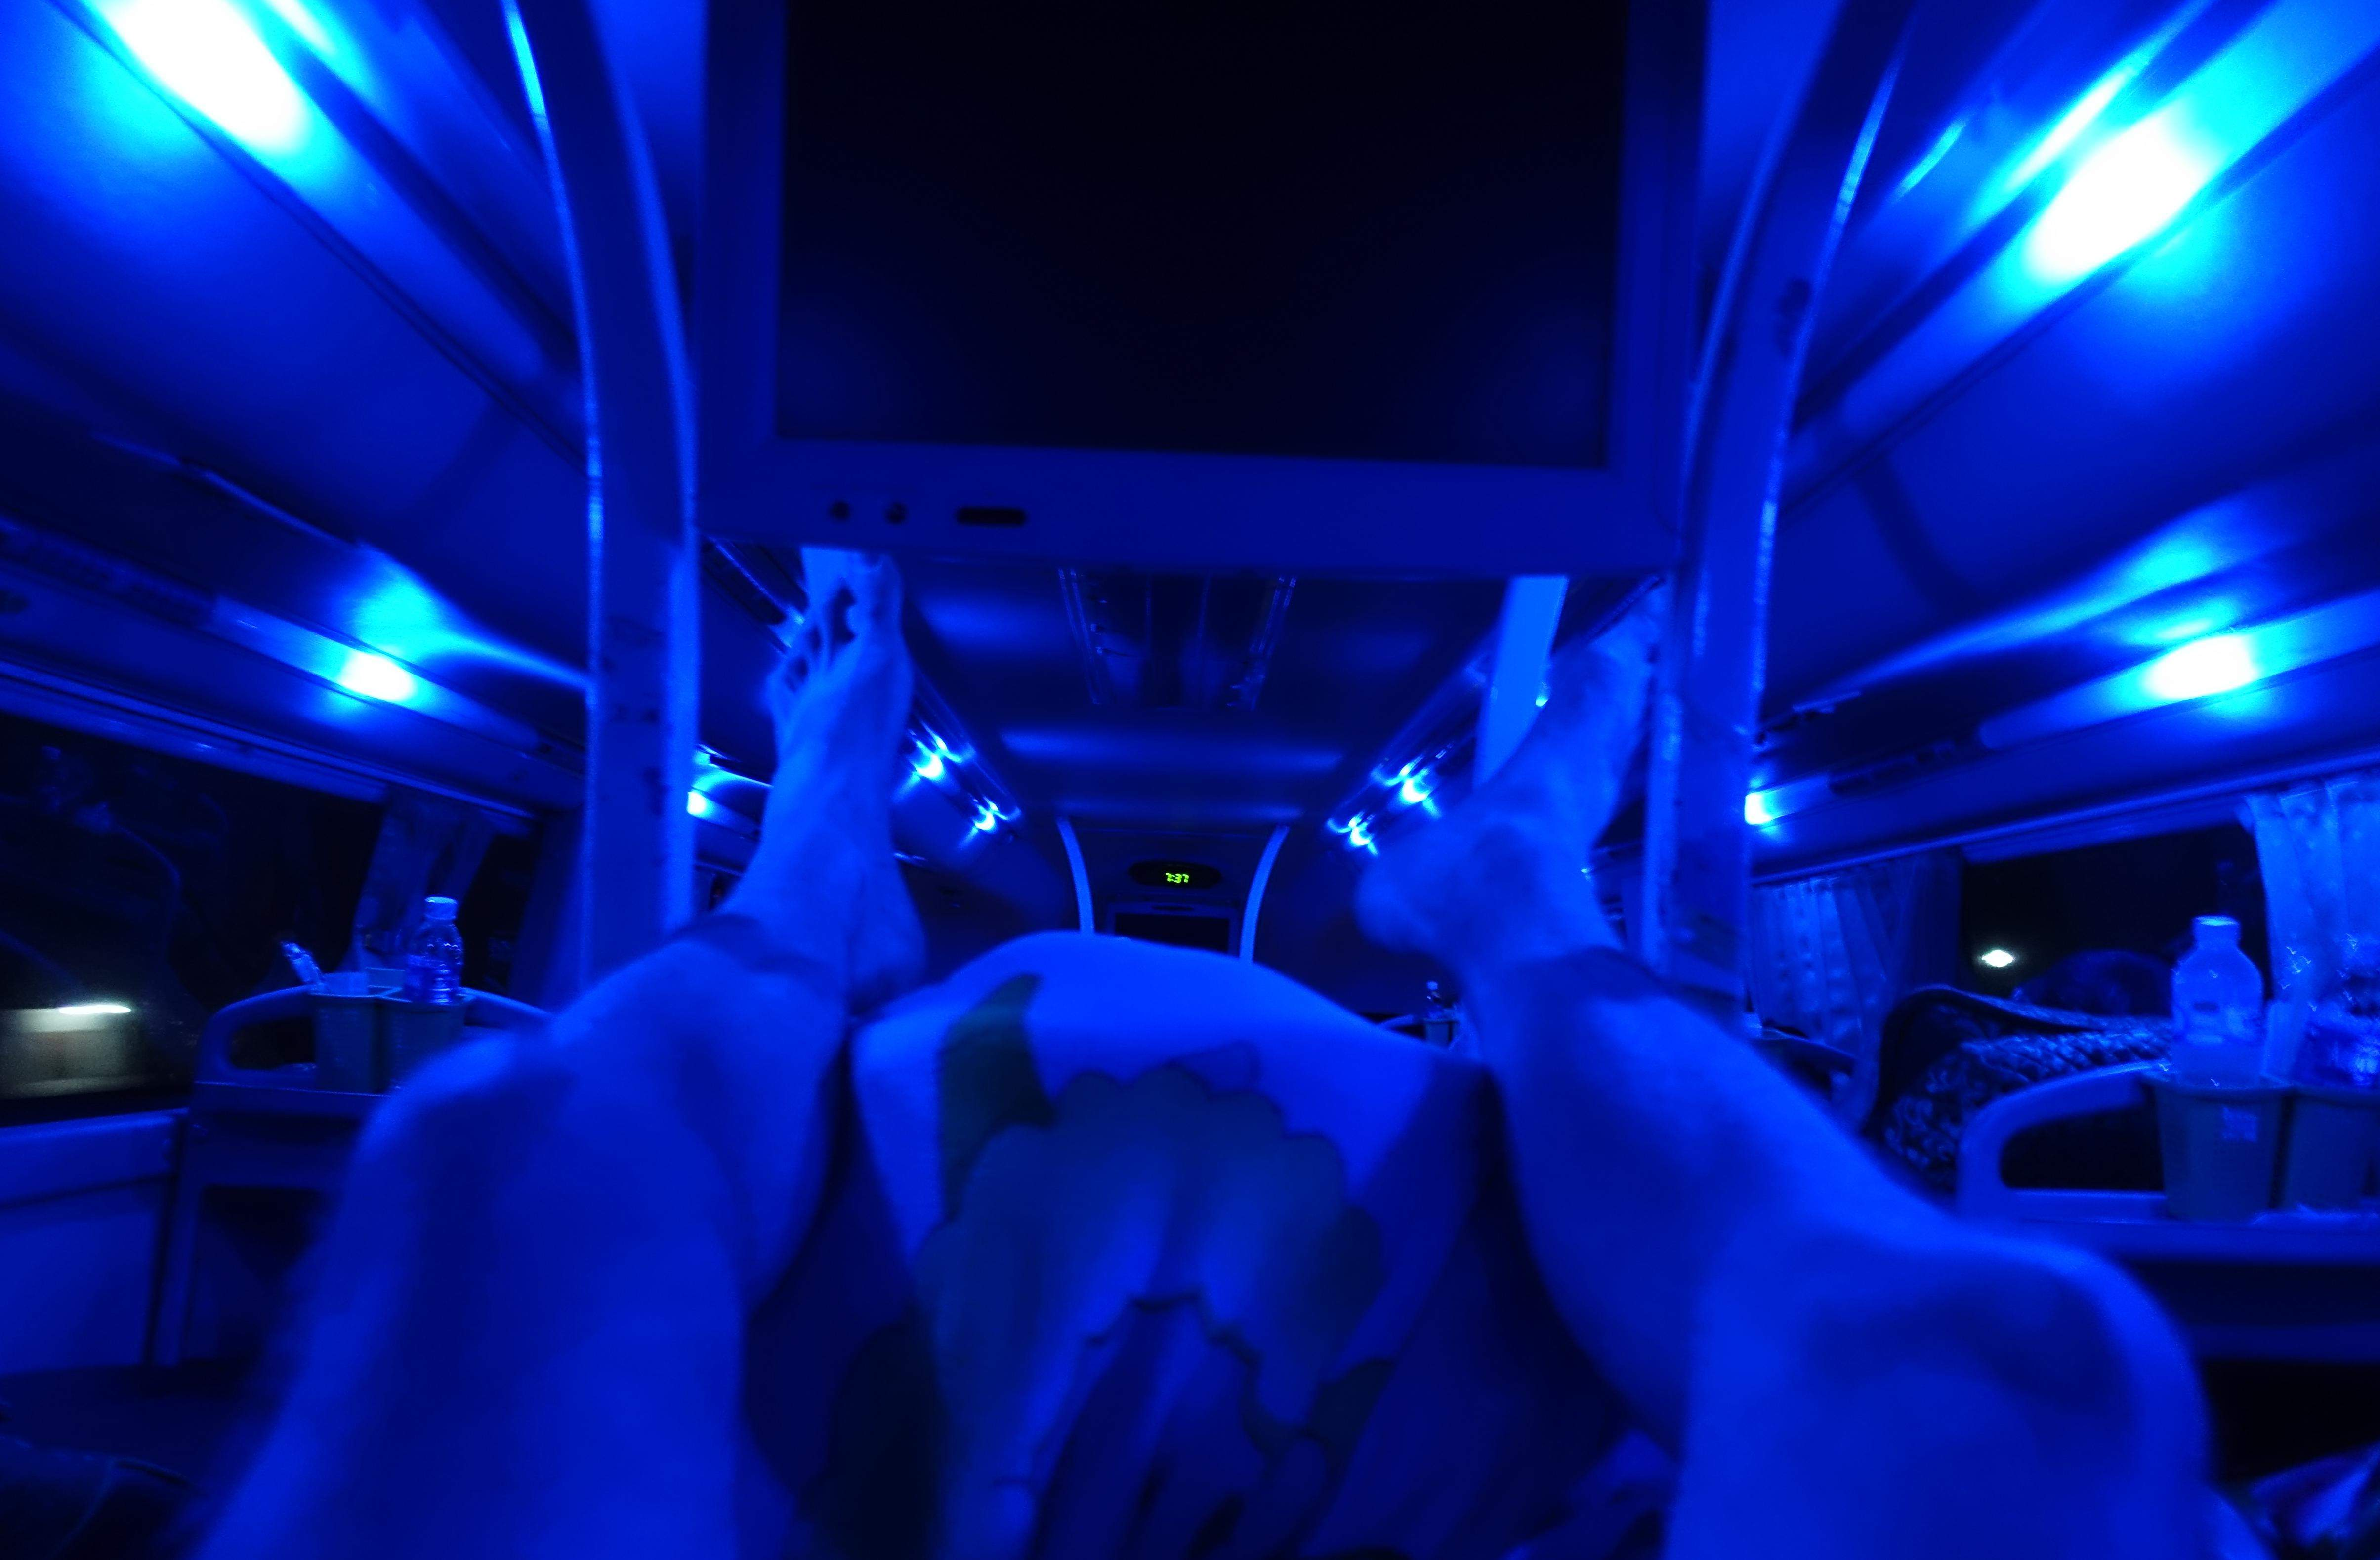 Limited legroom on the bus!